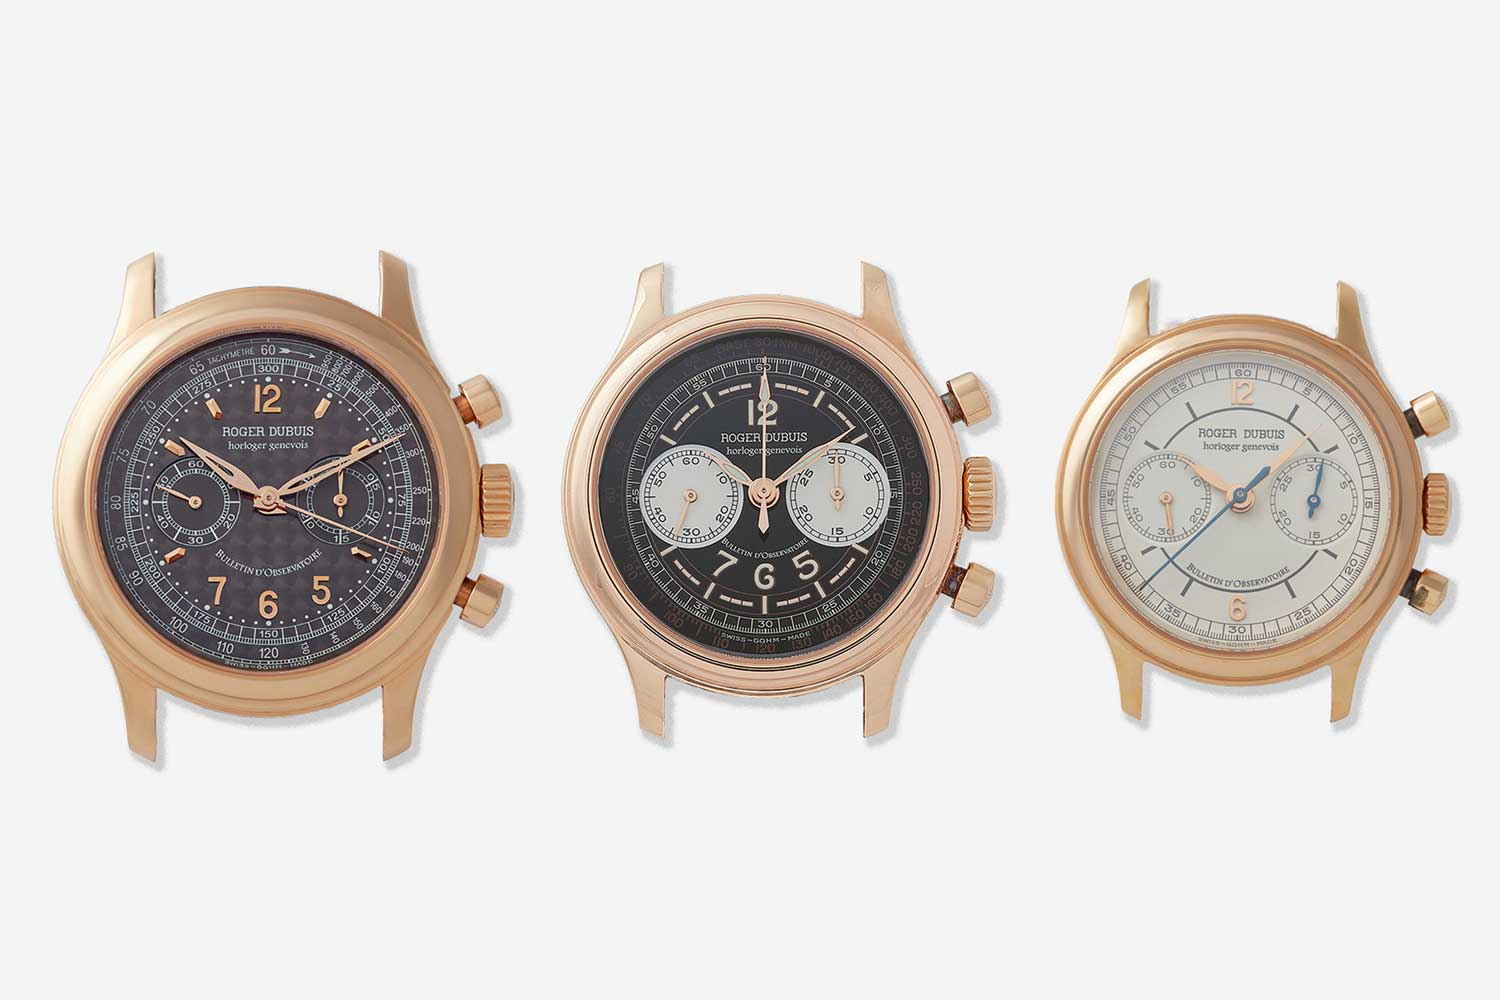 Roger Dubuis made the Hommage chronograph in 3 different sizes 34mm, 37m and 40mm. Note that there are specific dials used for specific cases. 34mm and 37mm (H34 and H37mm) respectively use Sector or Scientific Dials influenced by the Patek reference 130 in design.